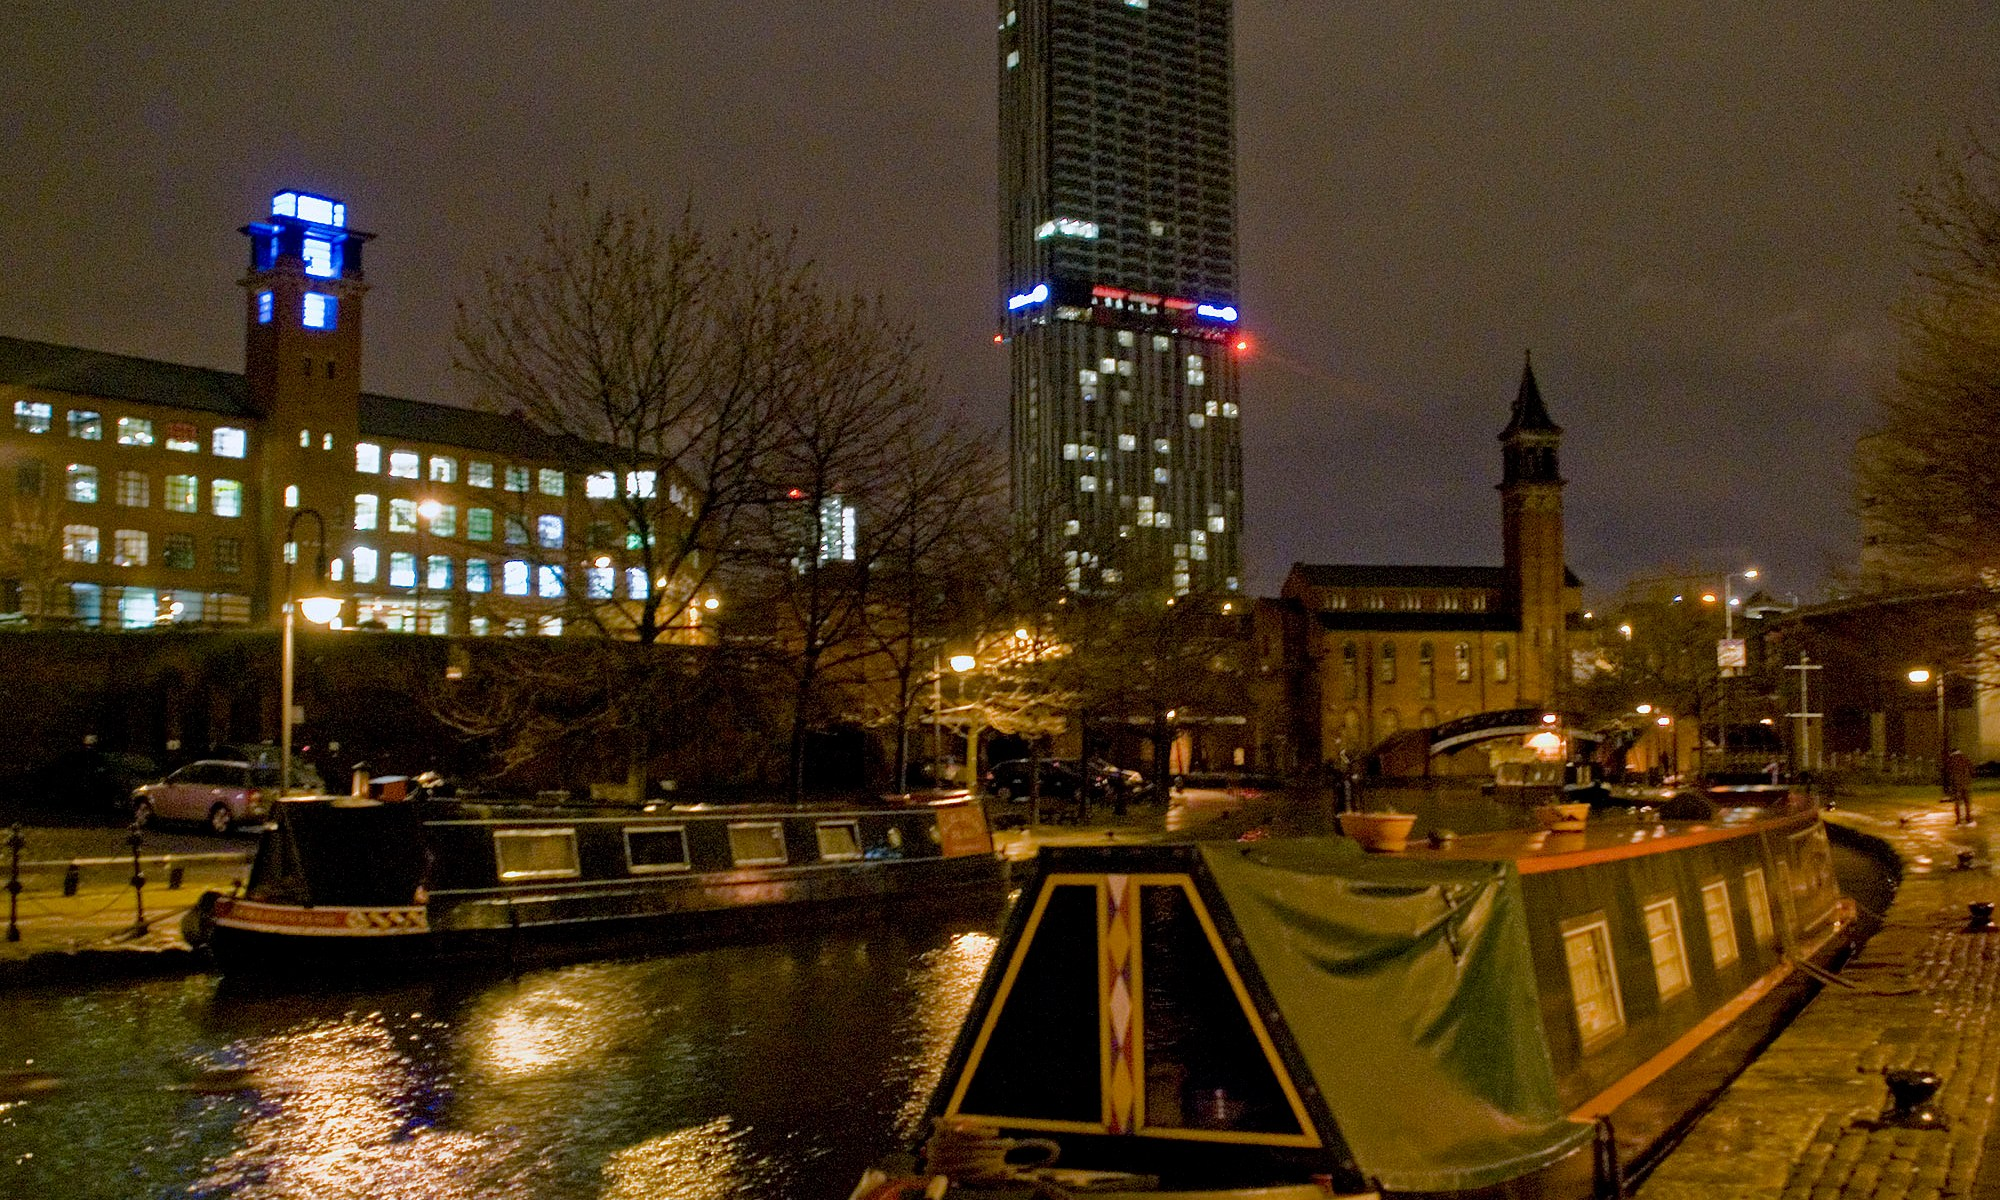 Narrowboat in Castlefield at night